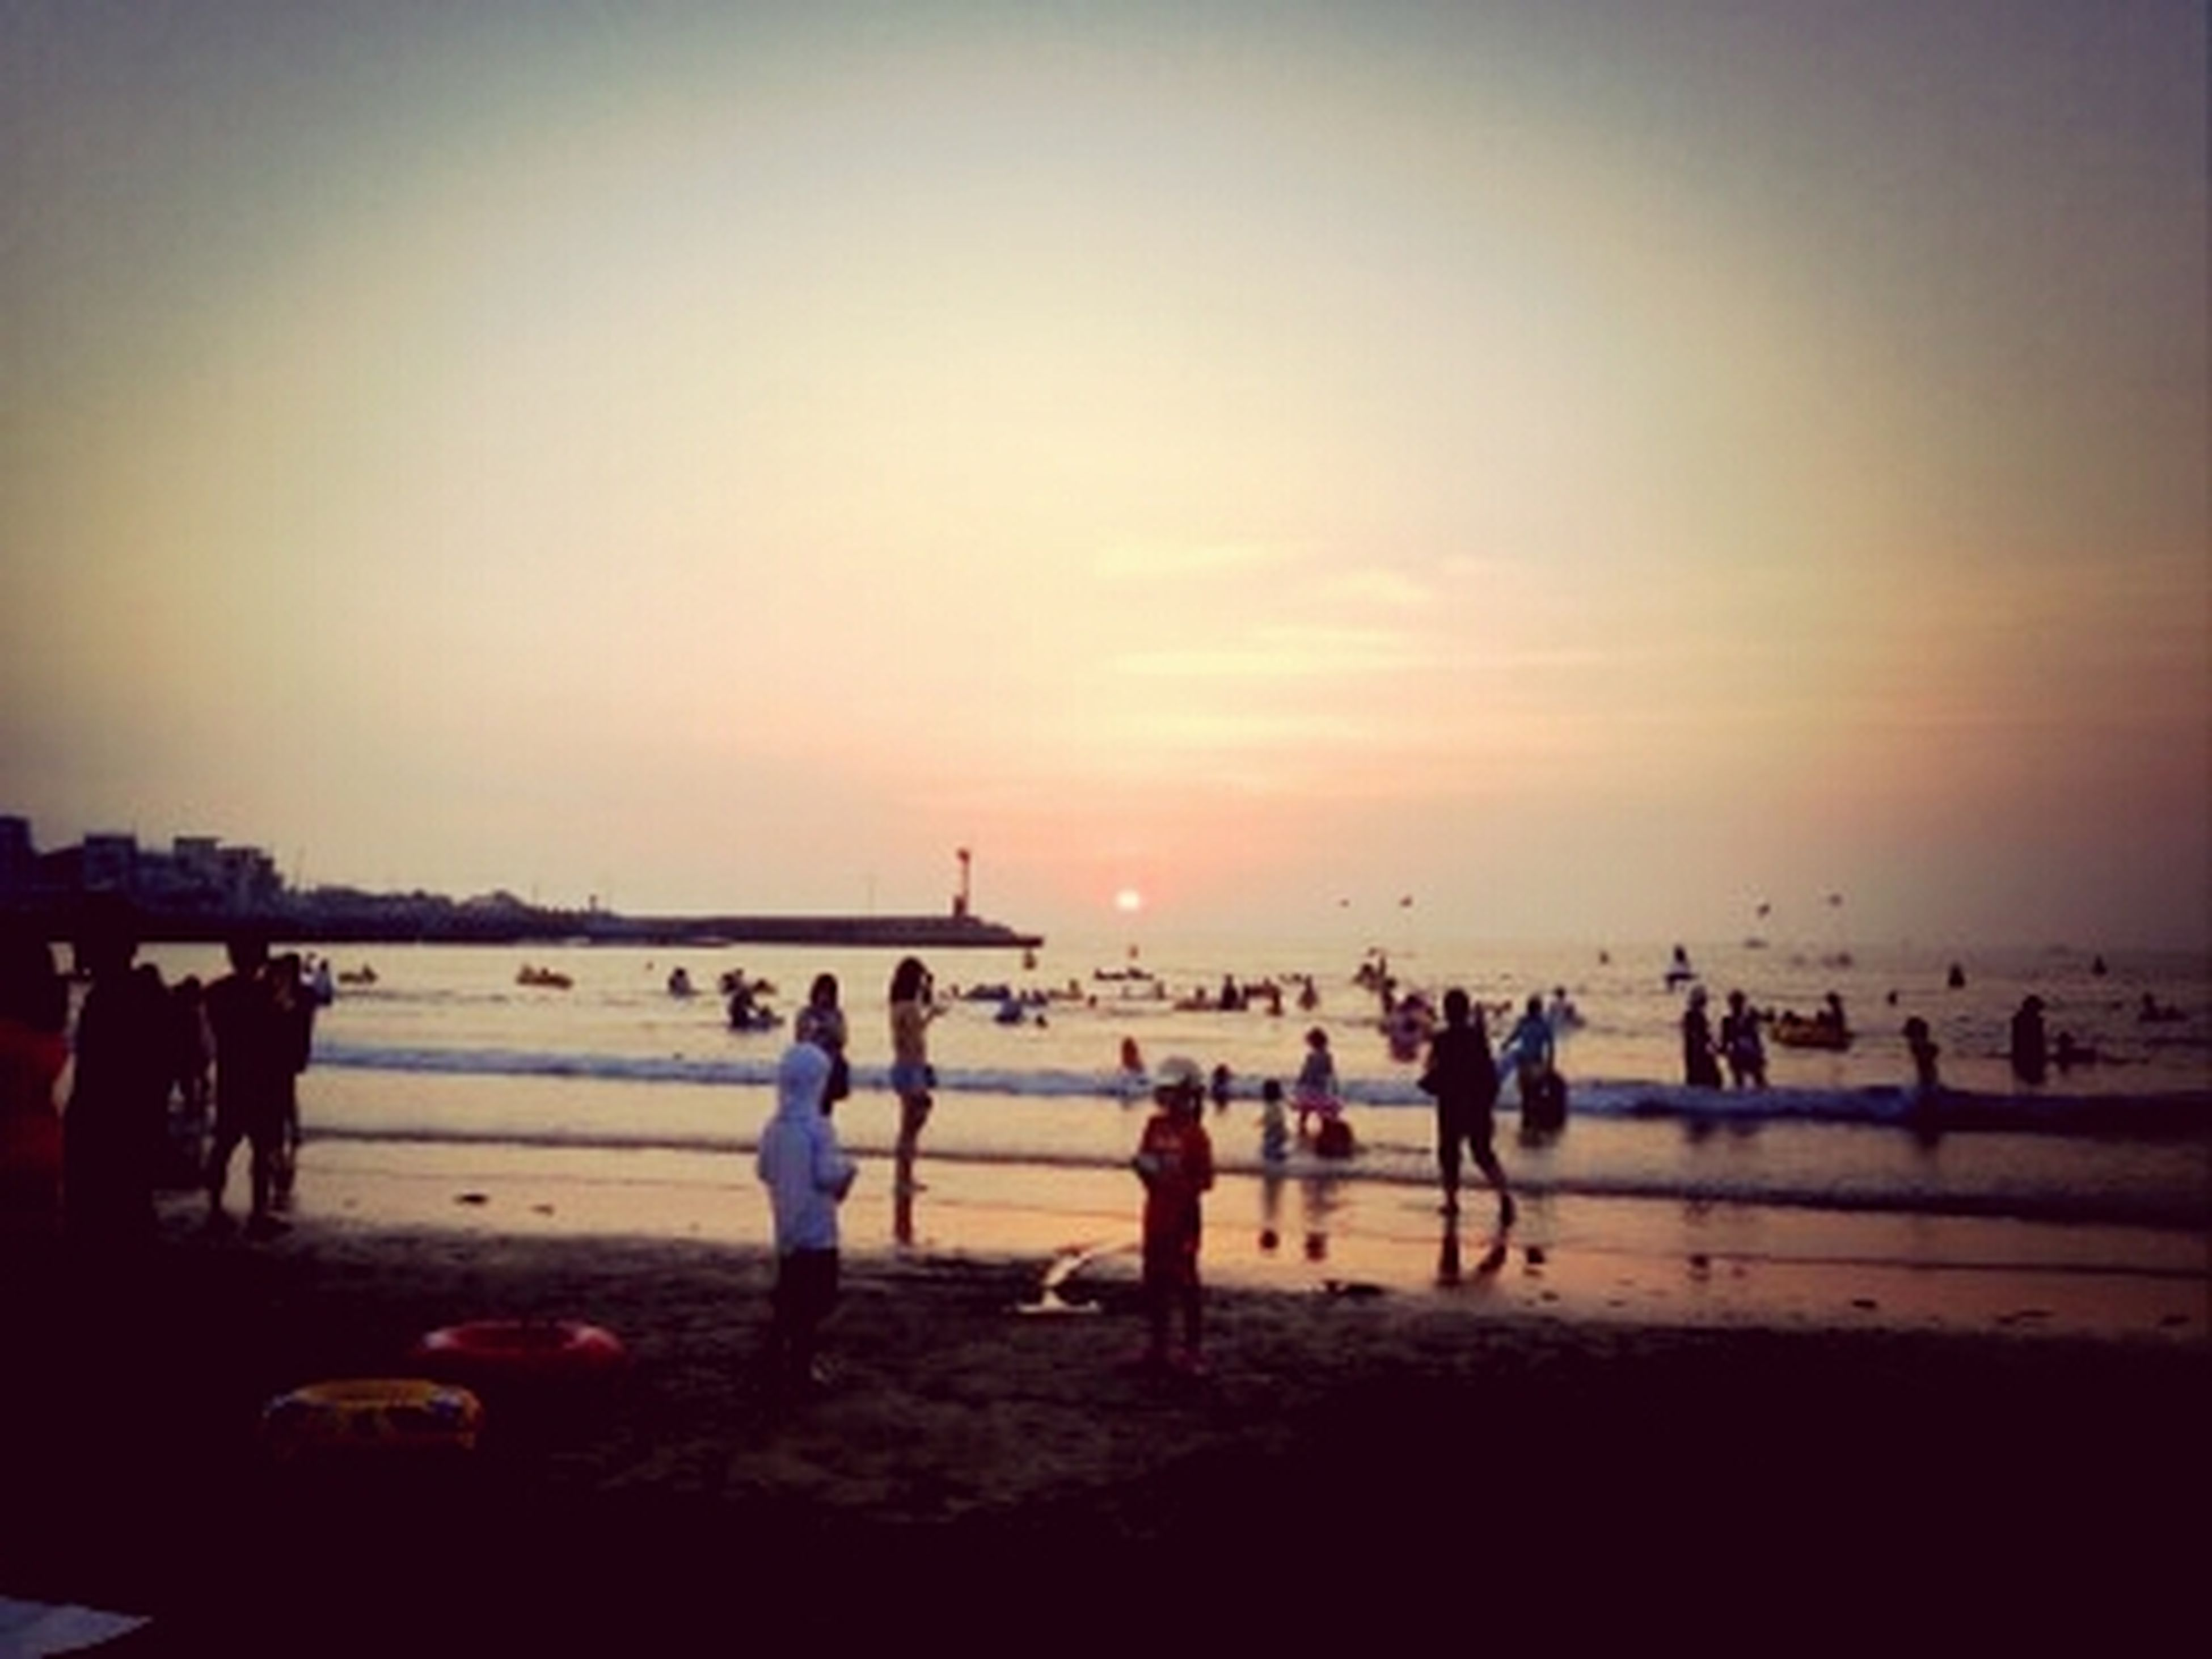 sunset, sea, large group of people, beach, horizon over water, water, silhouette, shore, sky, sun, mixed age range, orange color, scenics, lifestyles, leisure activity, men, beauty in nature, person, copy space